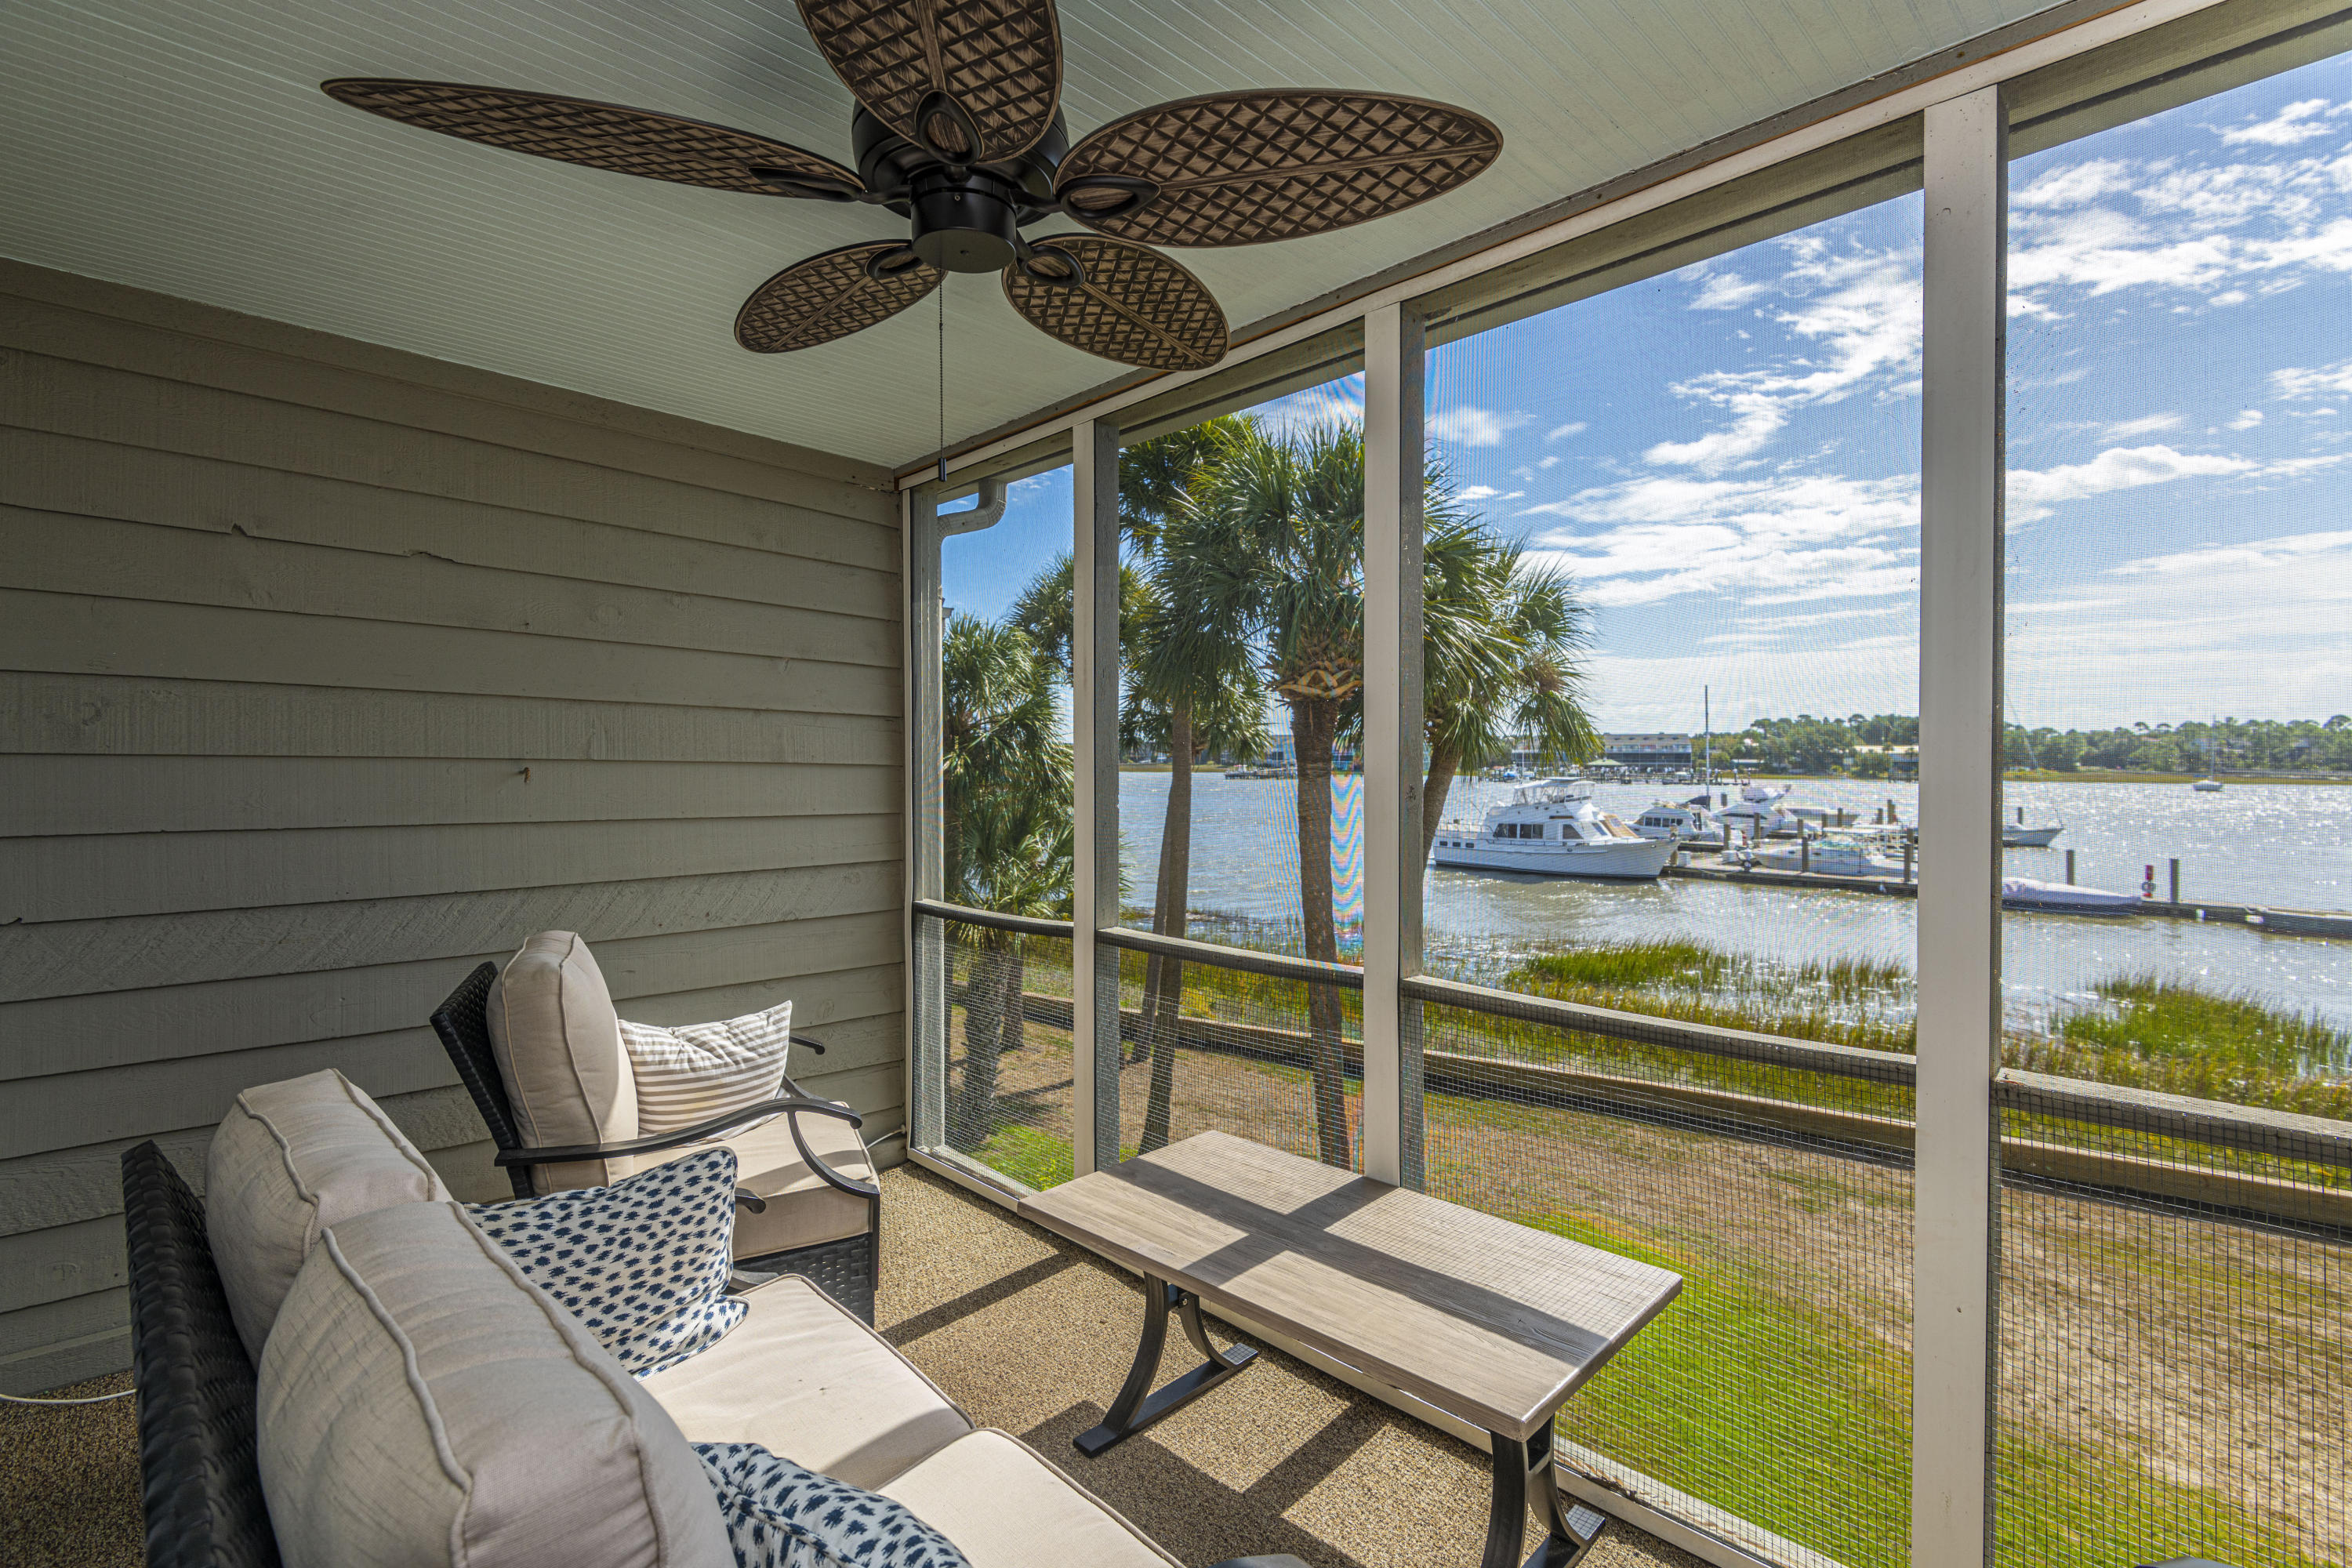 Mariners Cay Homes For Sale - 60 Mariners Cay, Folly Beach, SC - 7